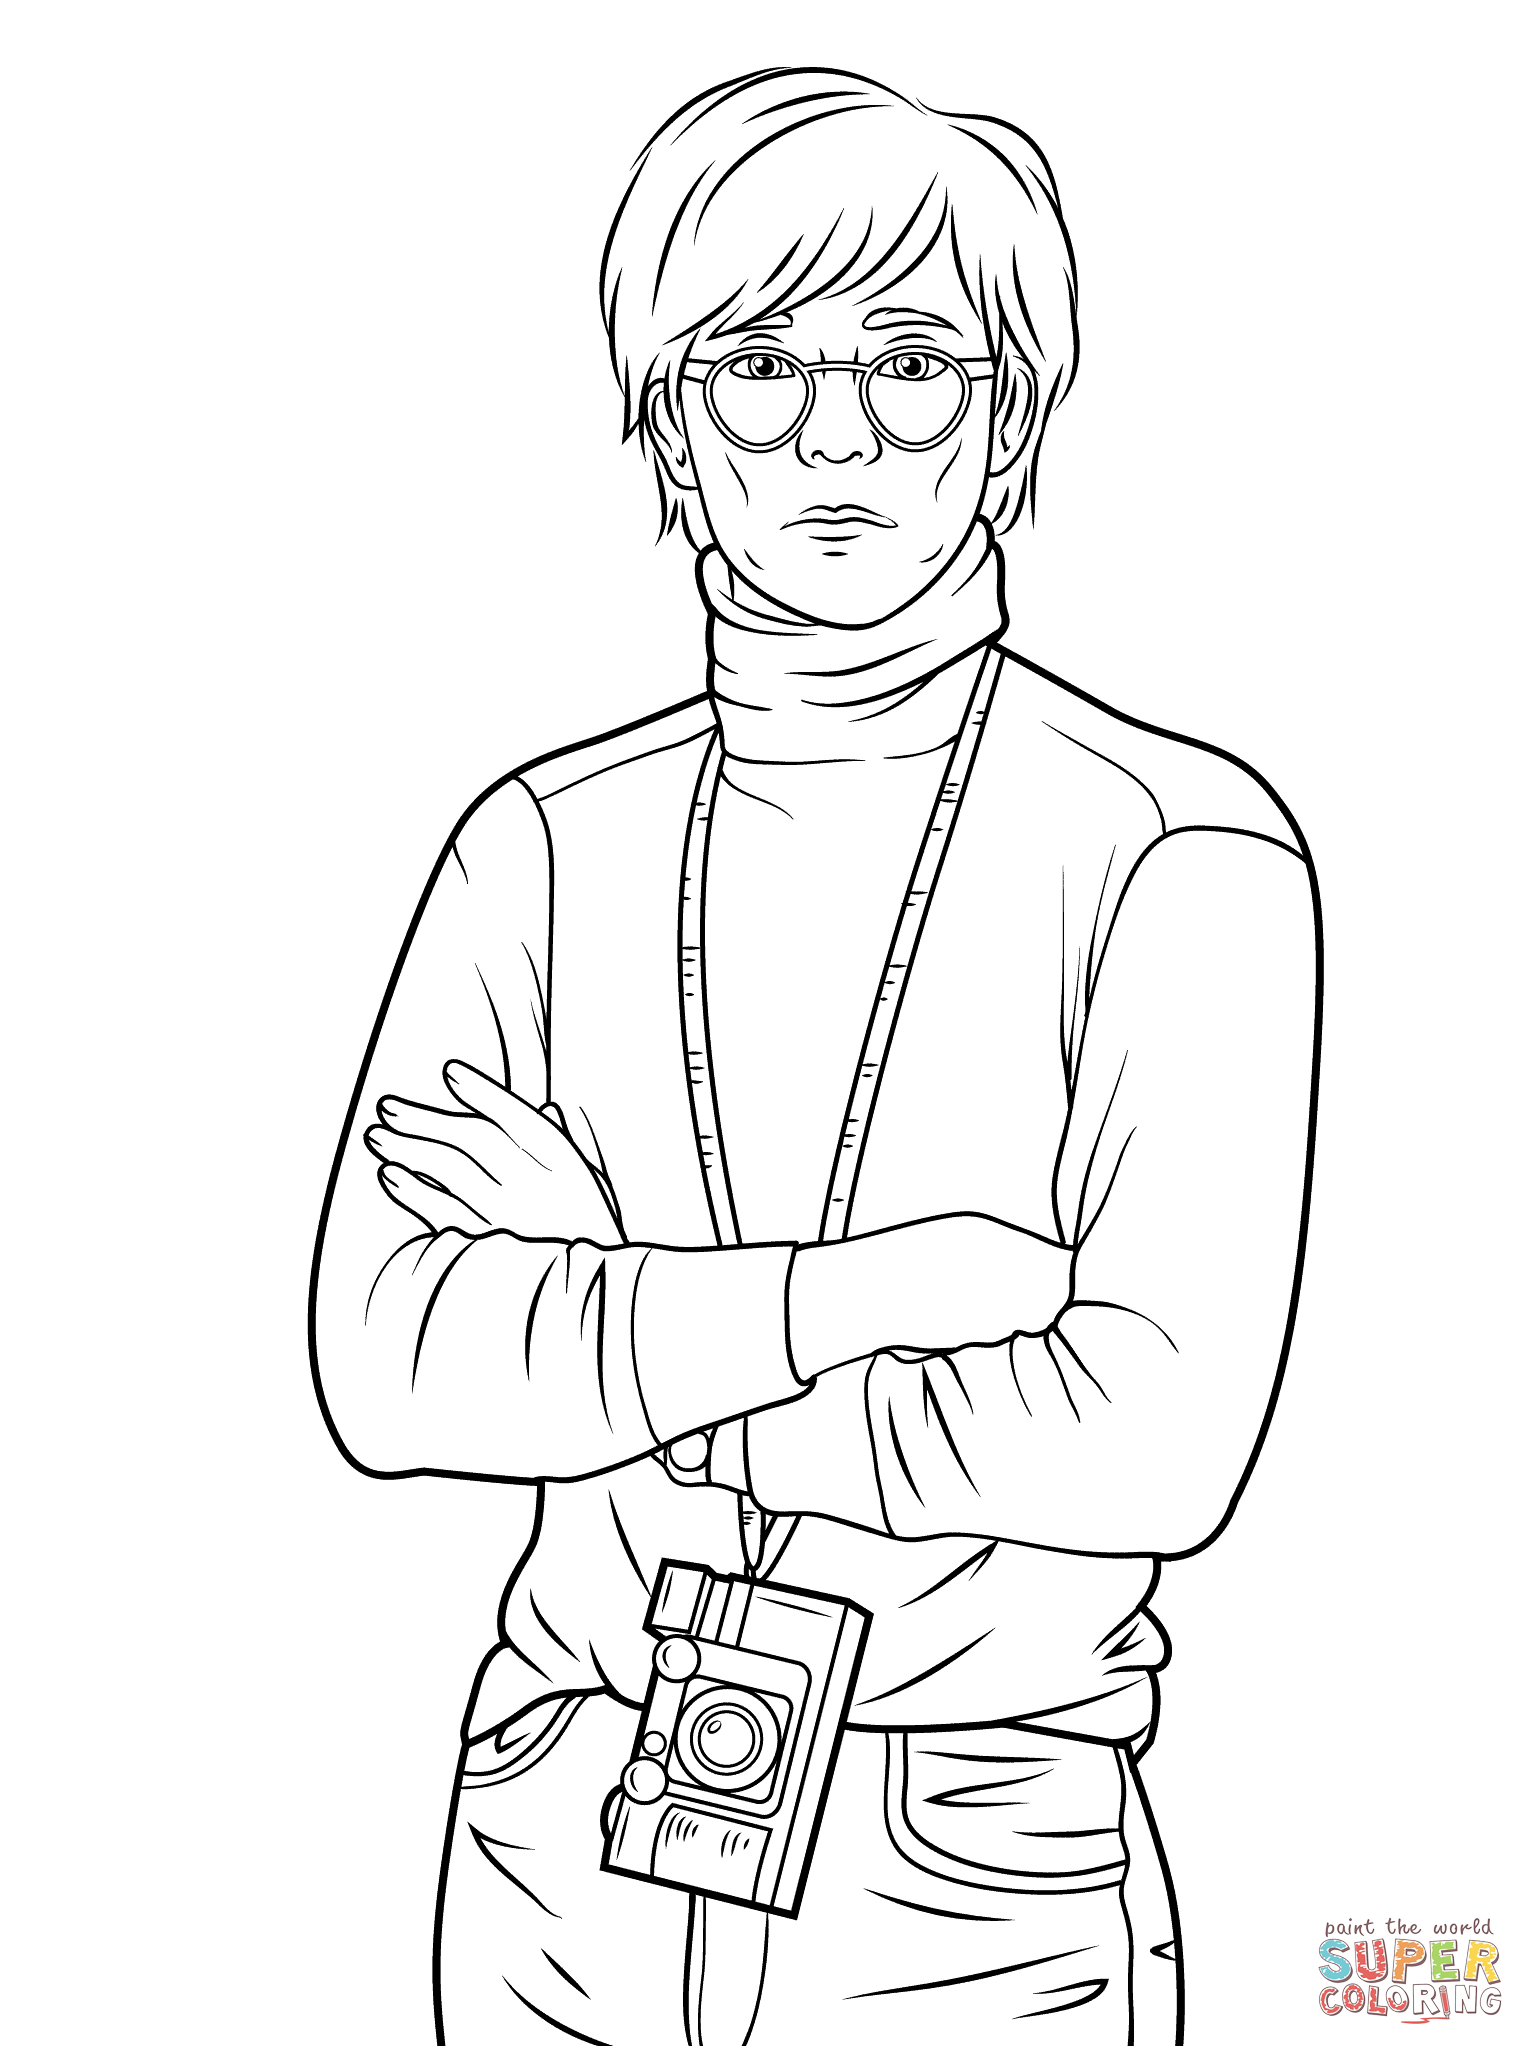 Andy Warhol Coloring Pages Free Coloring Home